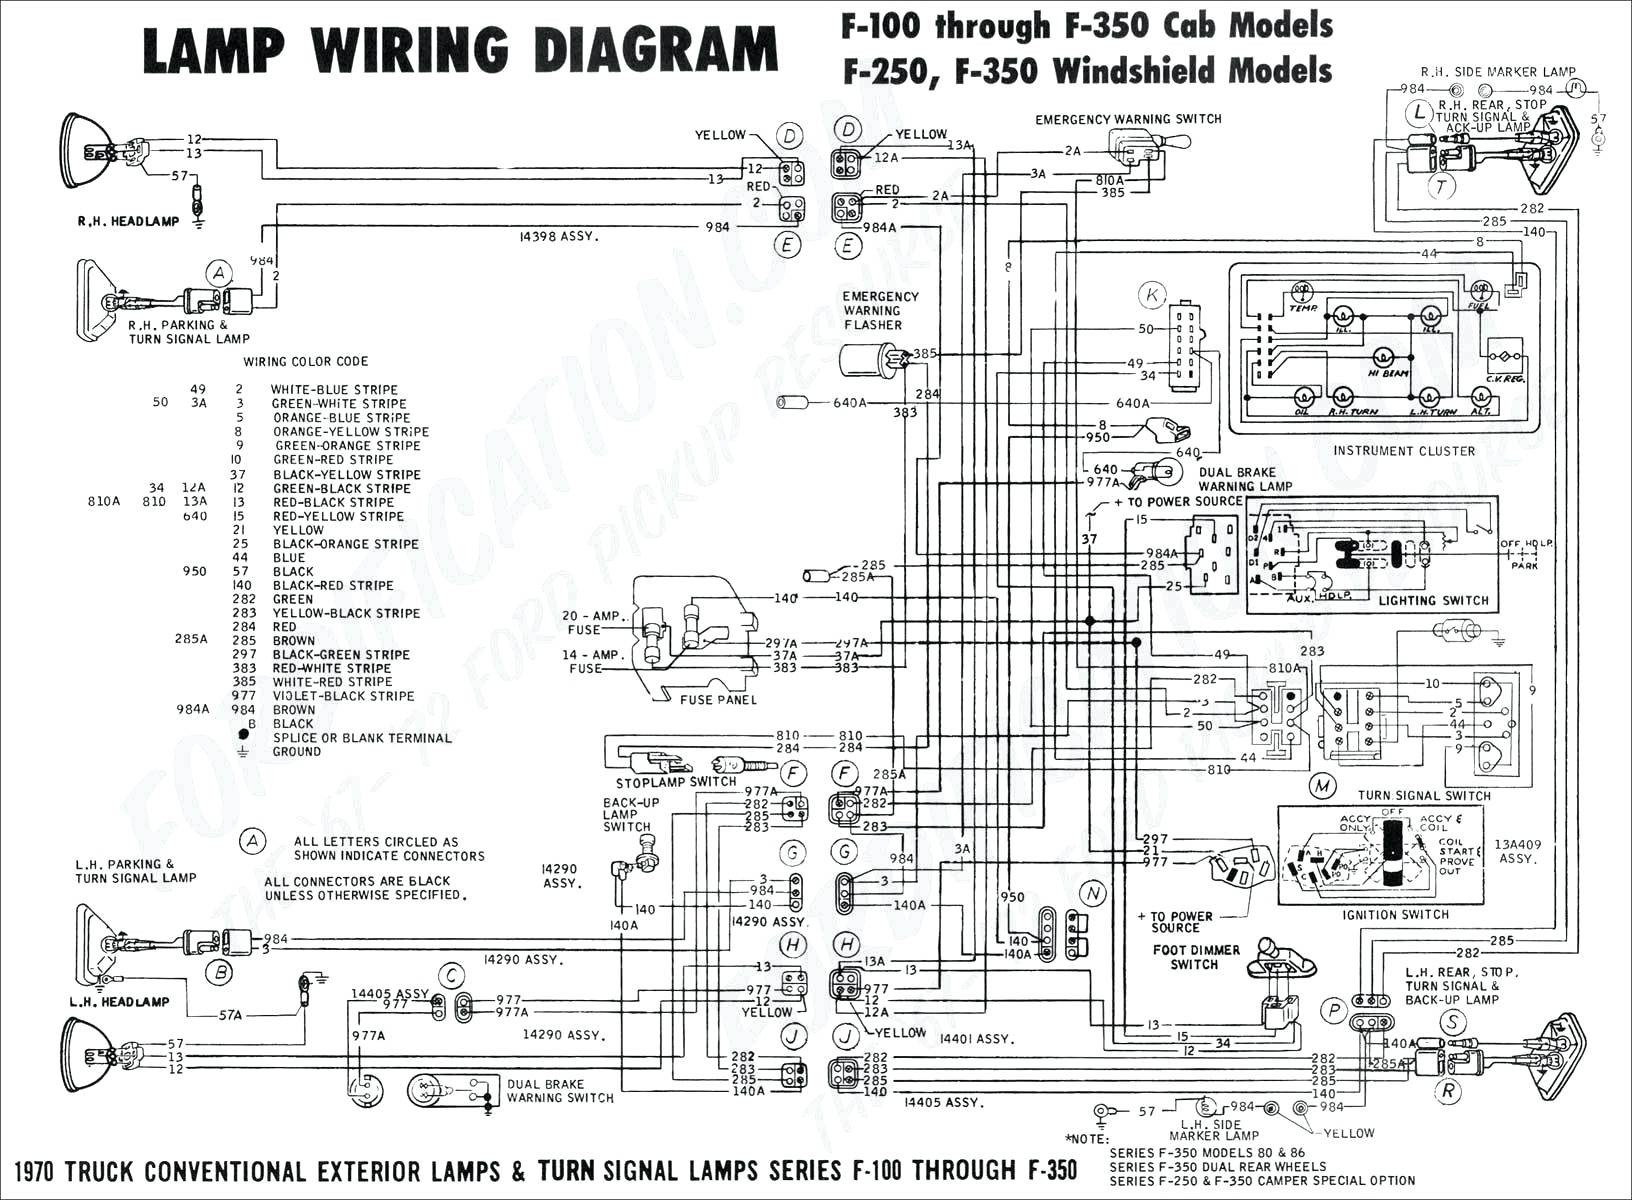 Ford F 250 Trailer Wiring Harness Diagram | Wiring Diagram F Trailer Wiring Schematic on